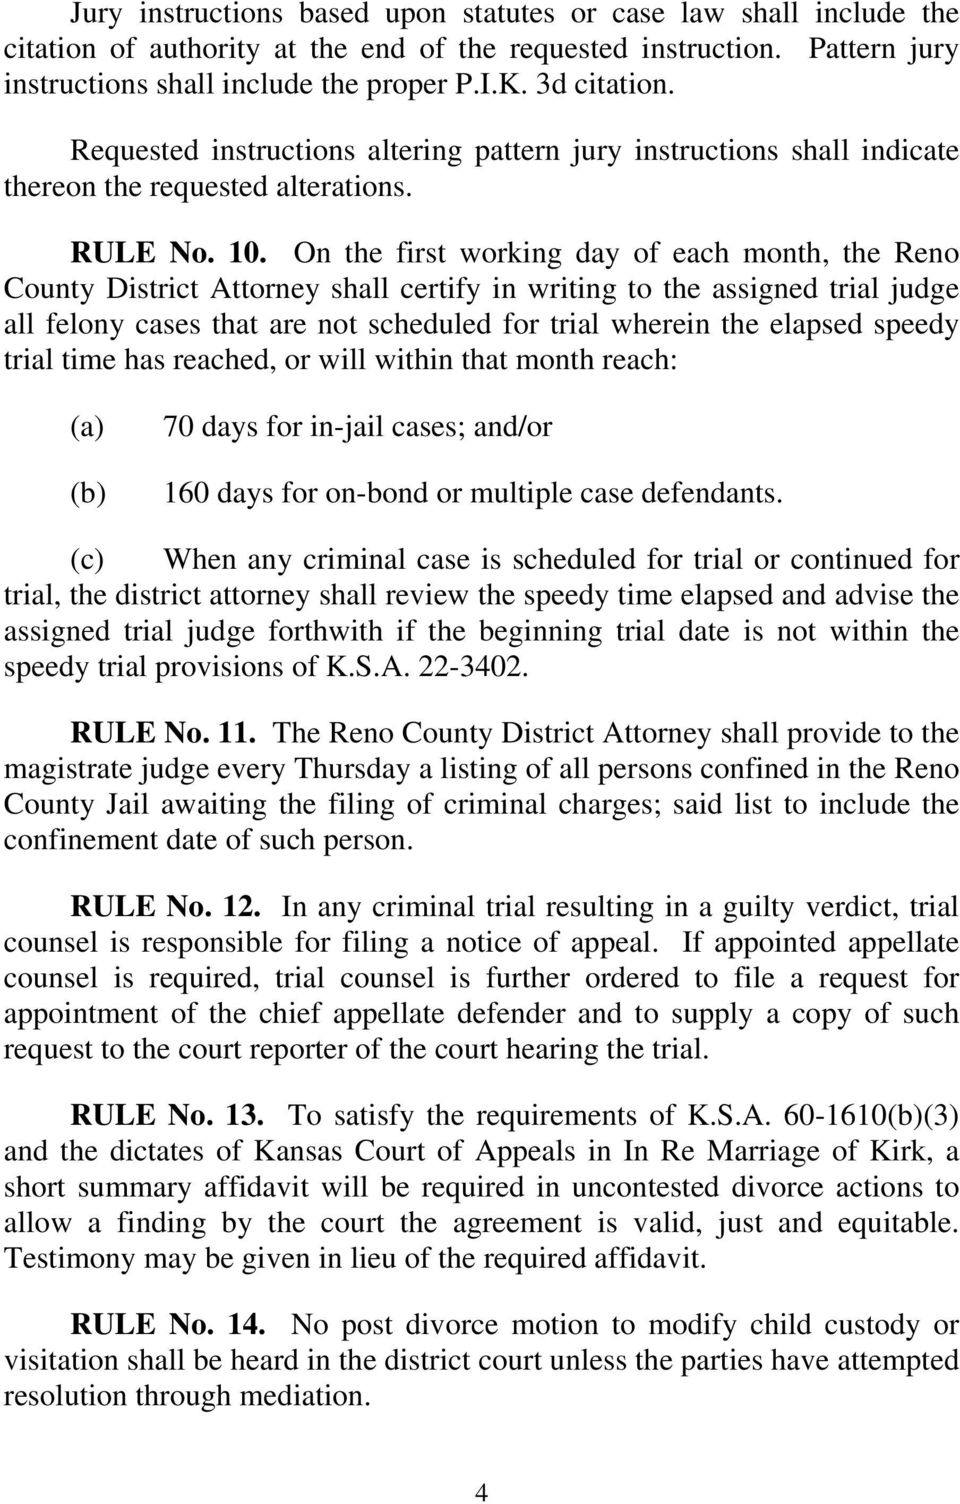 On the first working day of each month, the Reno County District Attorney shall certify in writing to the assigned trial judge all felony cases that are not scheduled for trial wherein the elapsed